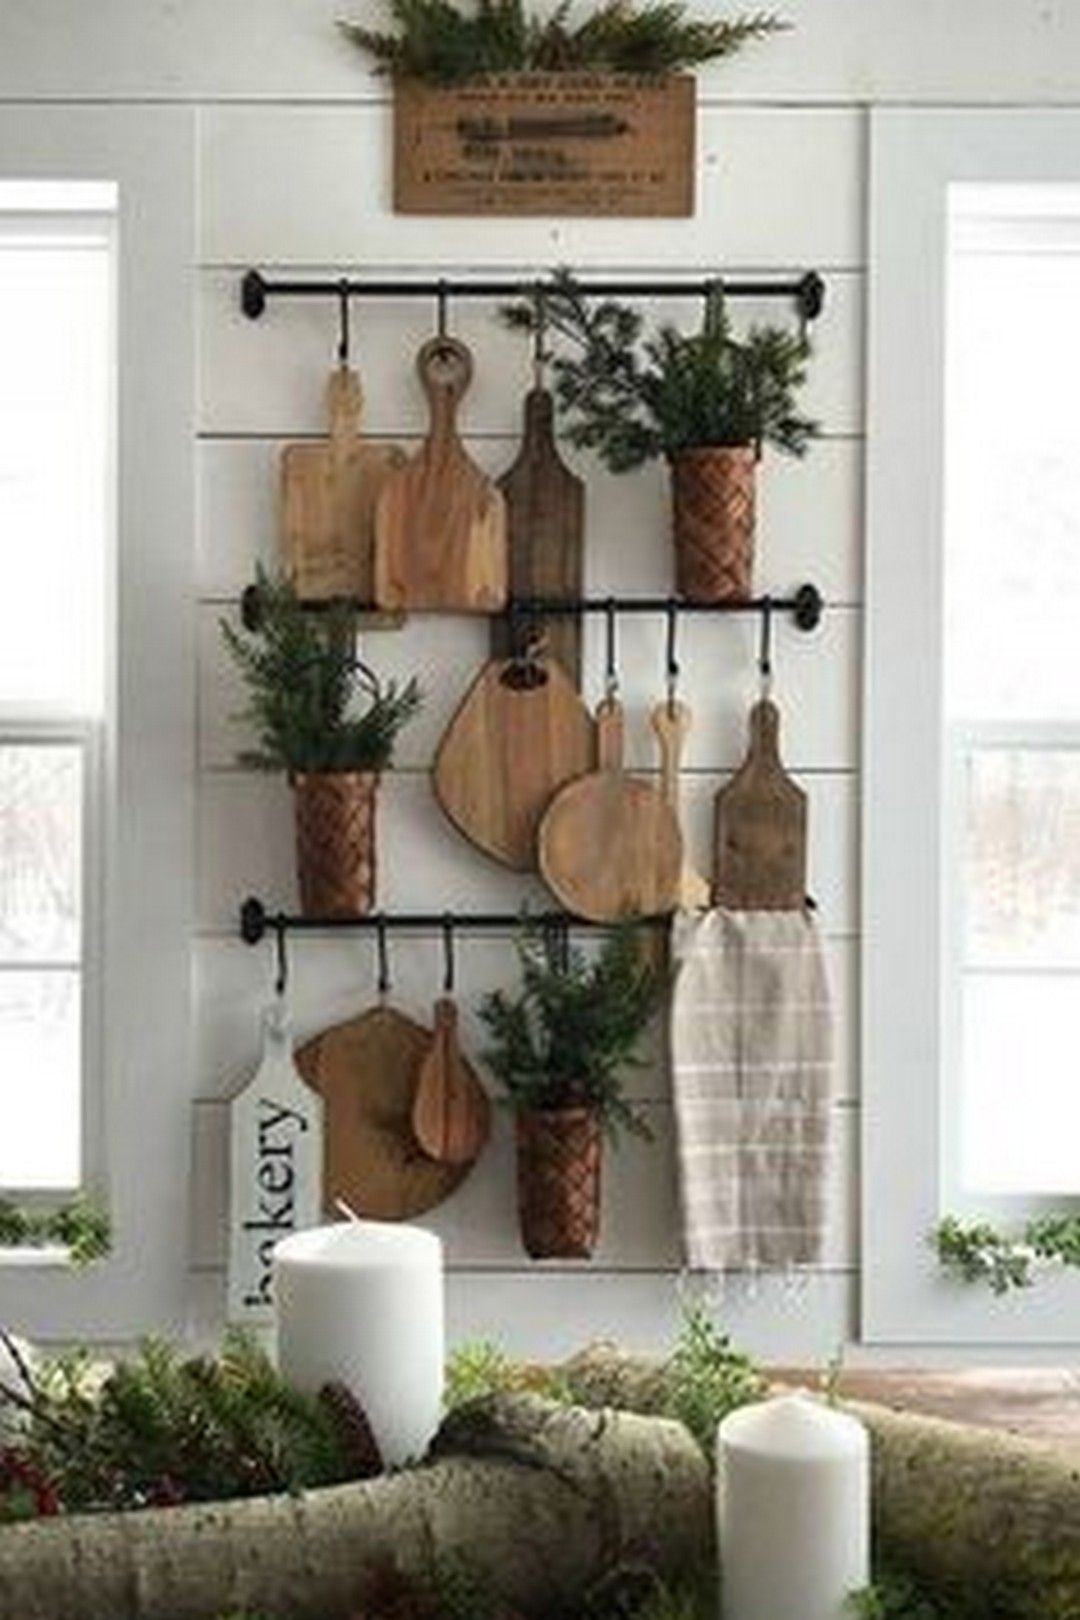 10 Great Ways of Modifying Kitchen with These Kitchen Country Home Decors images